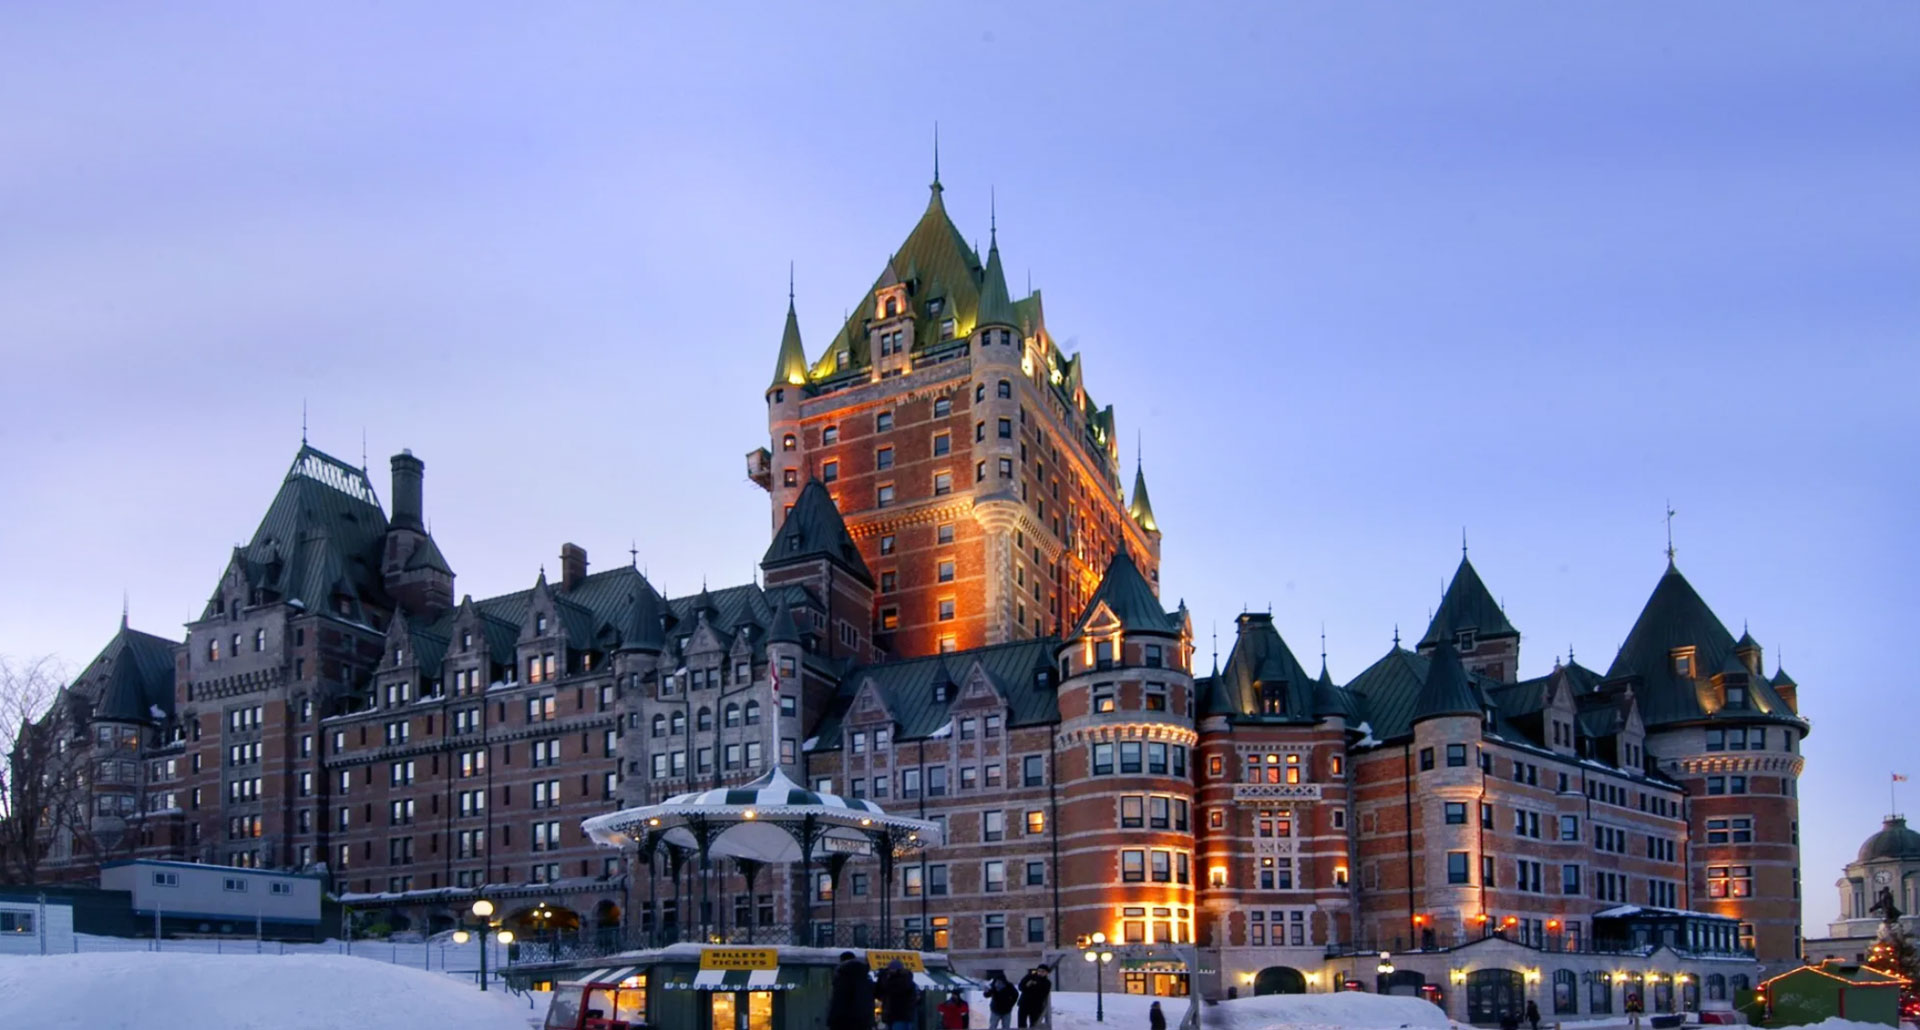 Le Chateau Frontenac - boutique hotel in Quebec City